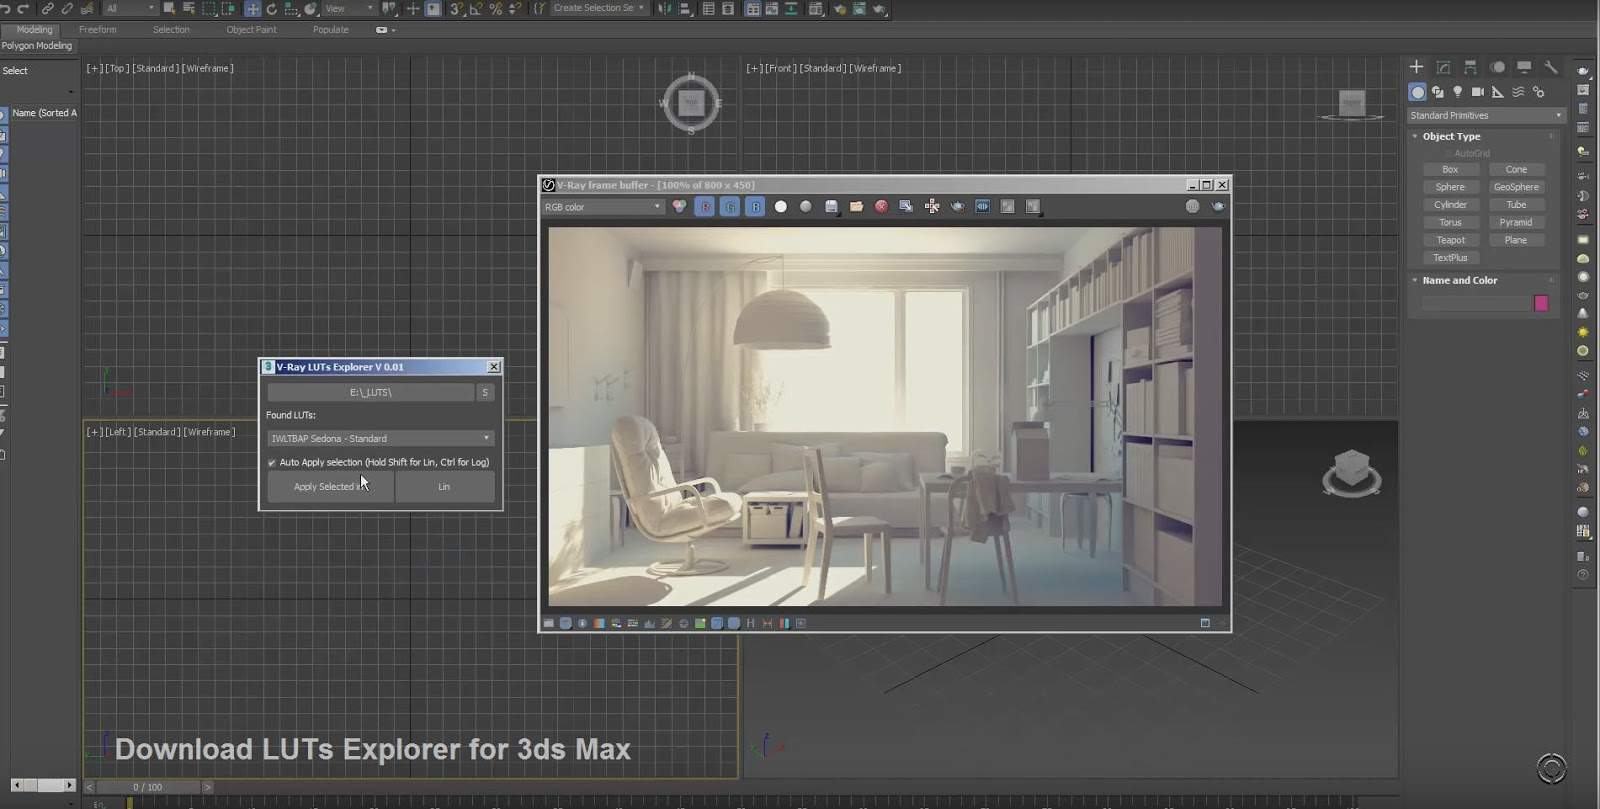 3ds max 2017 vray download | DOWNLOAD 3DS MAX 2017  2019-03-13